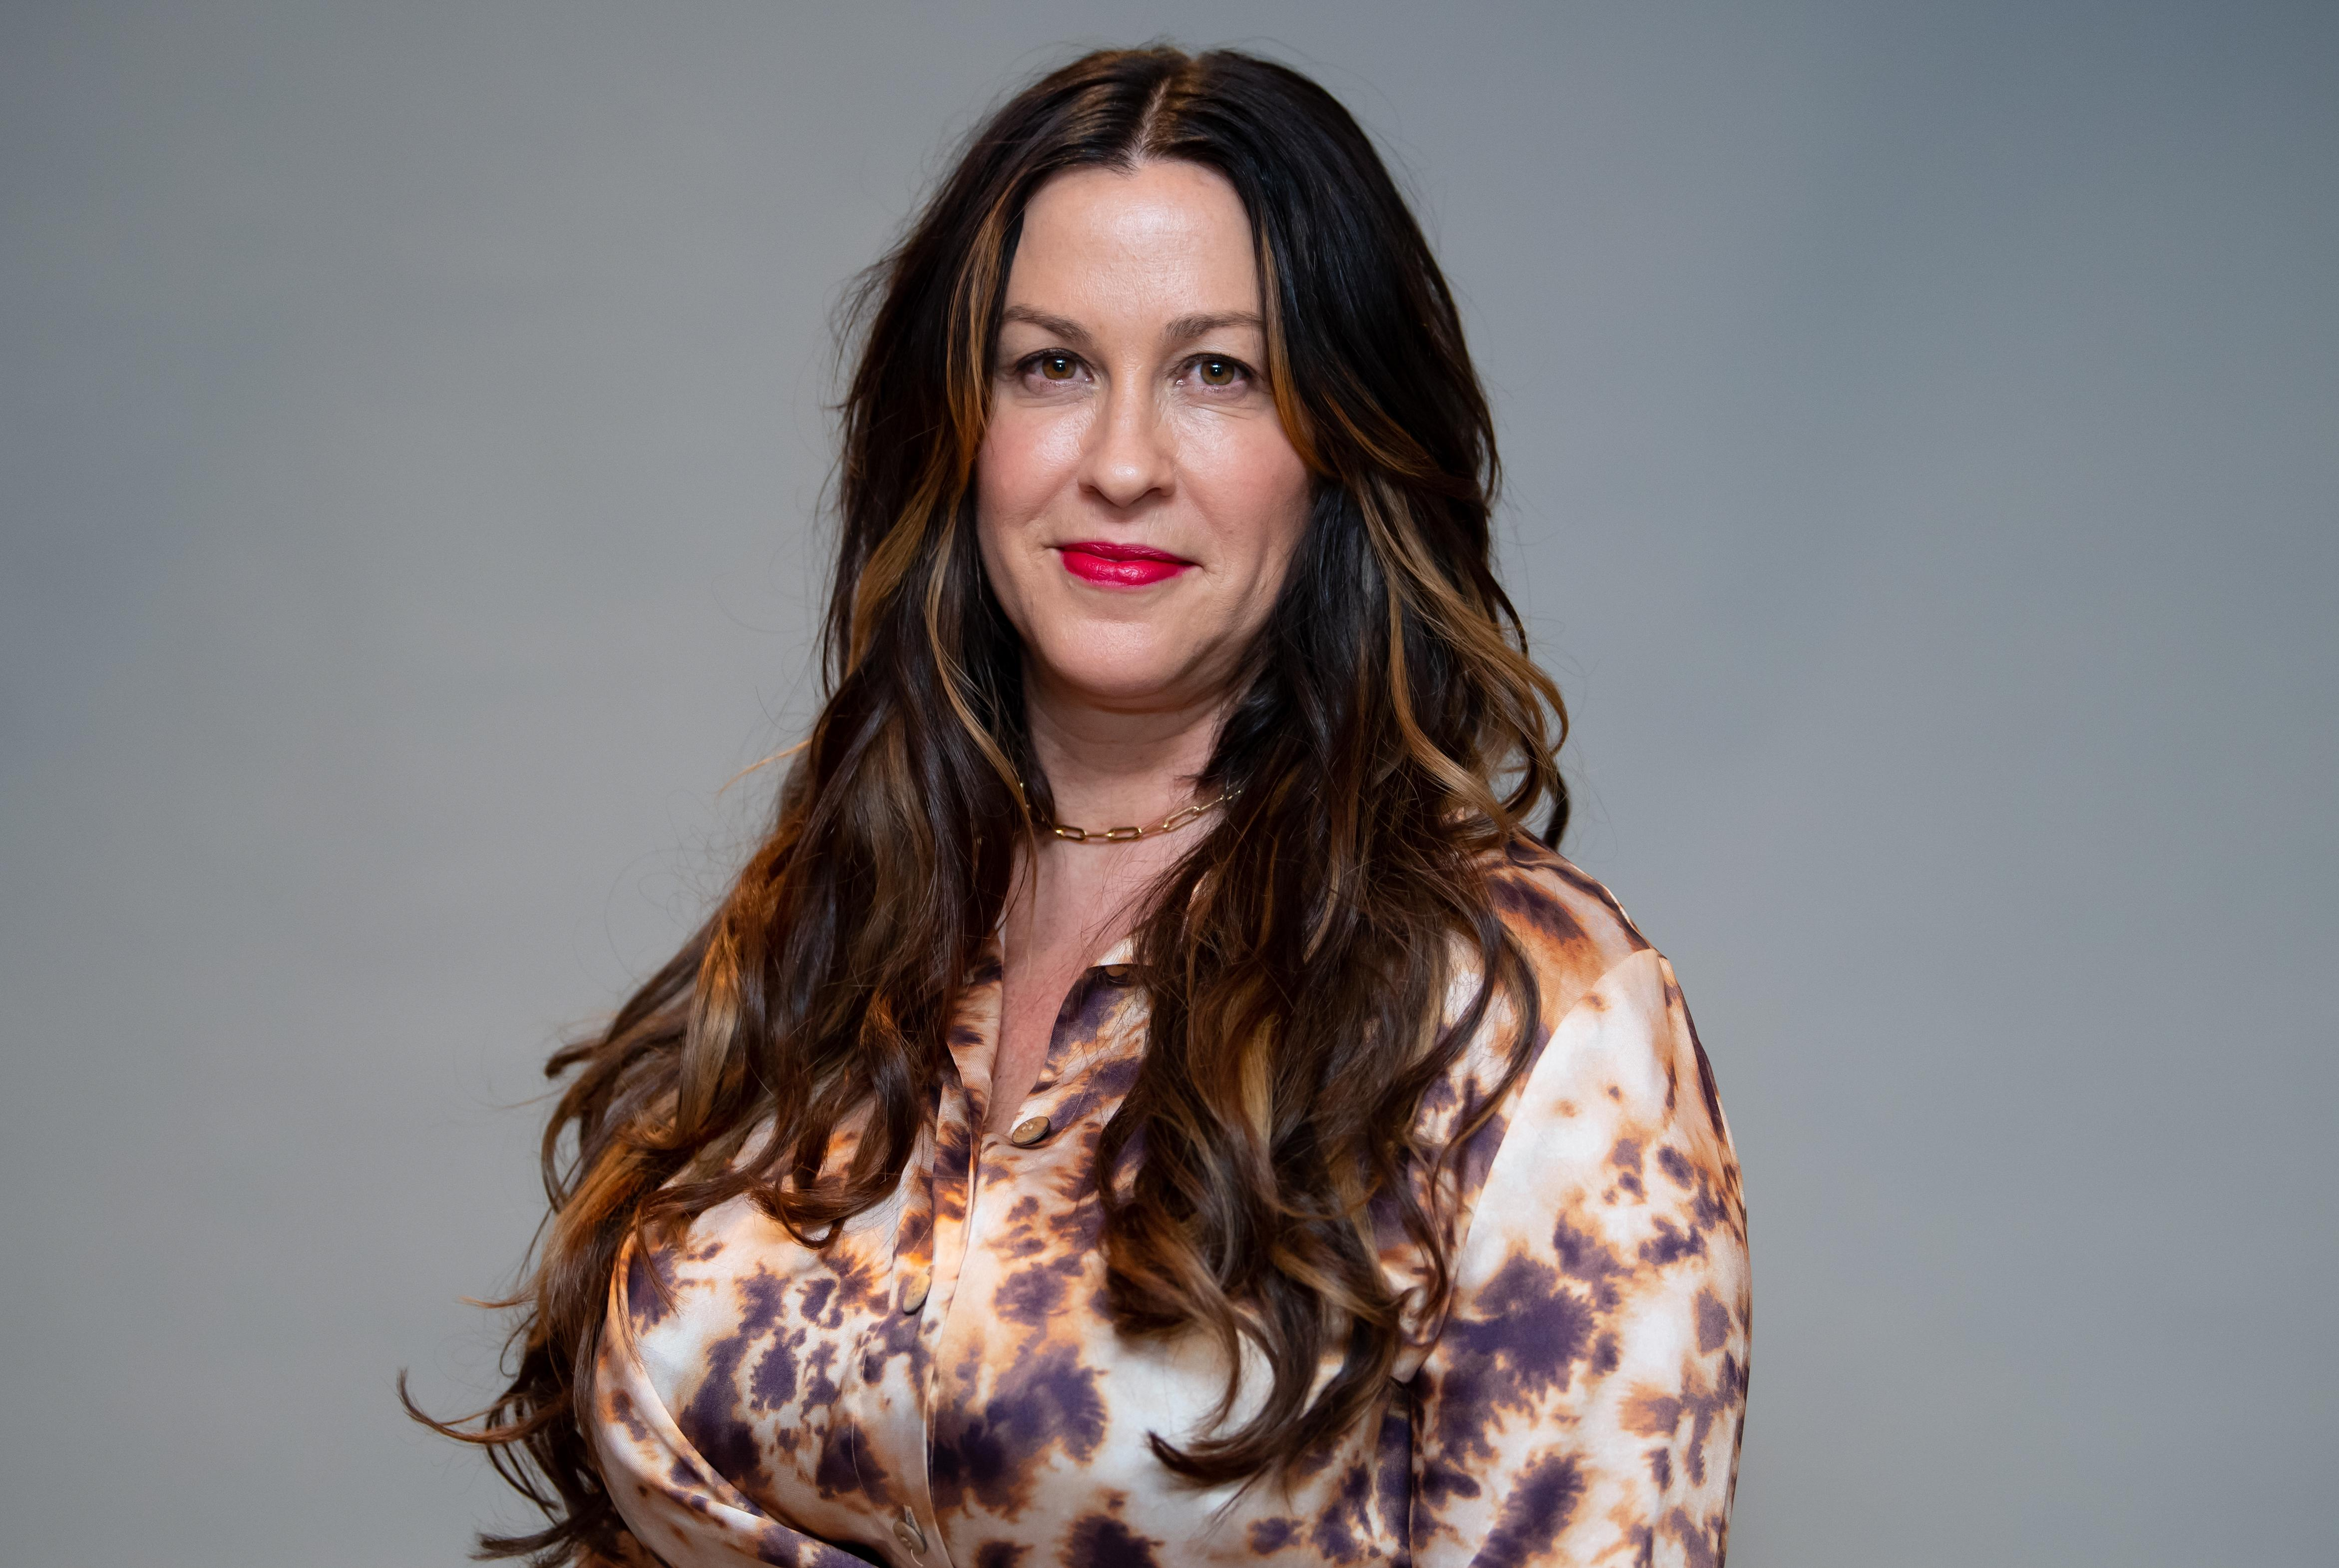 Alanis Morissette breastfeeds on magazine cover, opens up about 'postpartum experience': 'It was mostly depression, suicidal ideation, and anxiety'